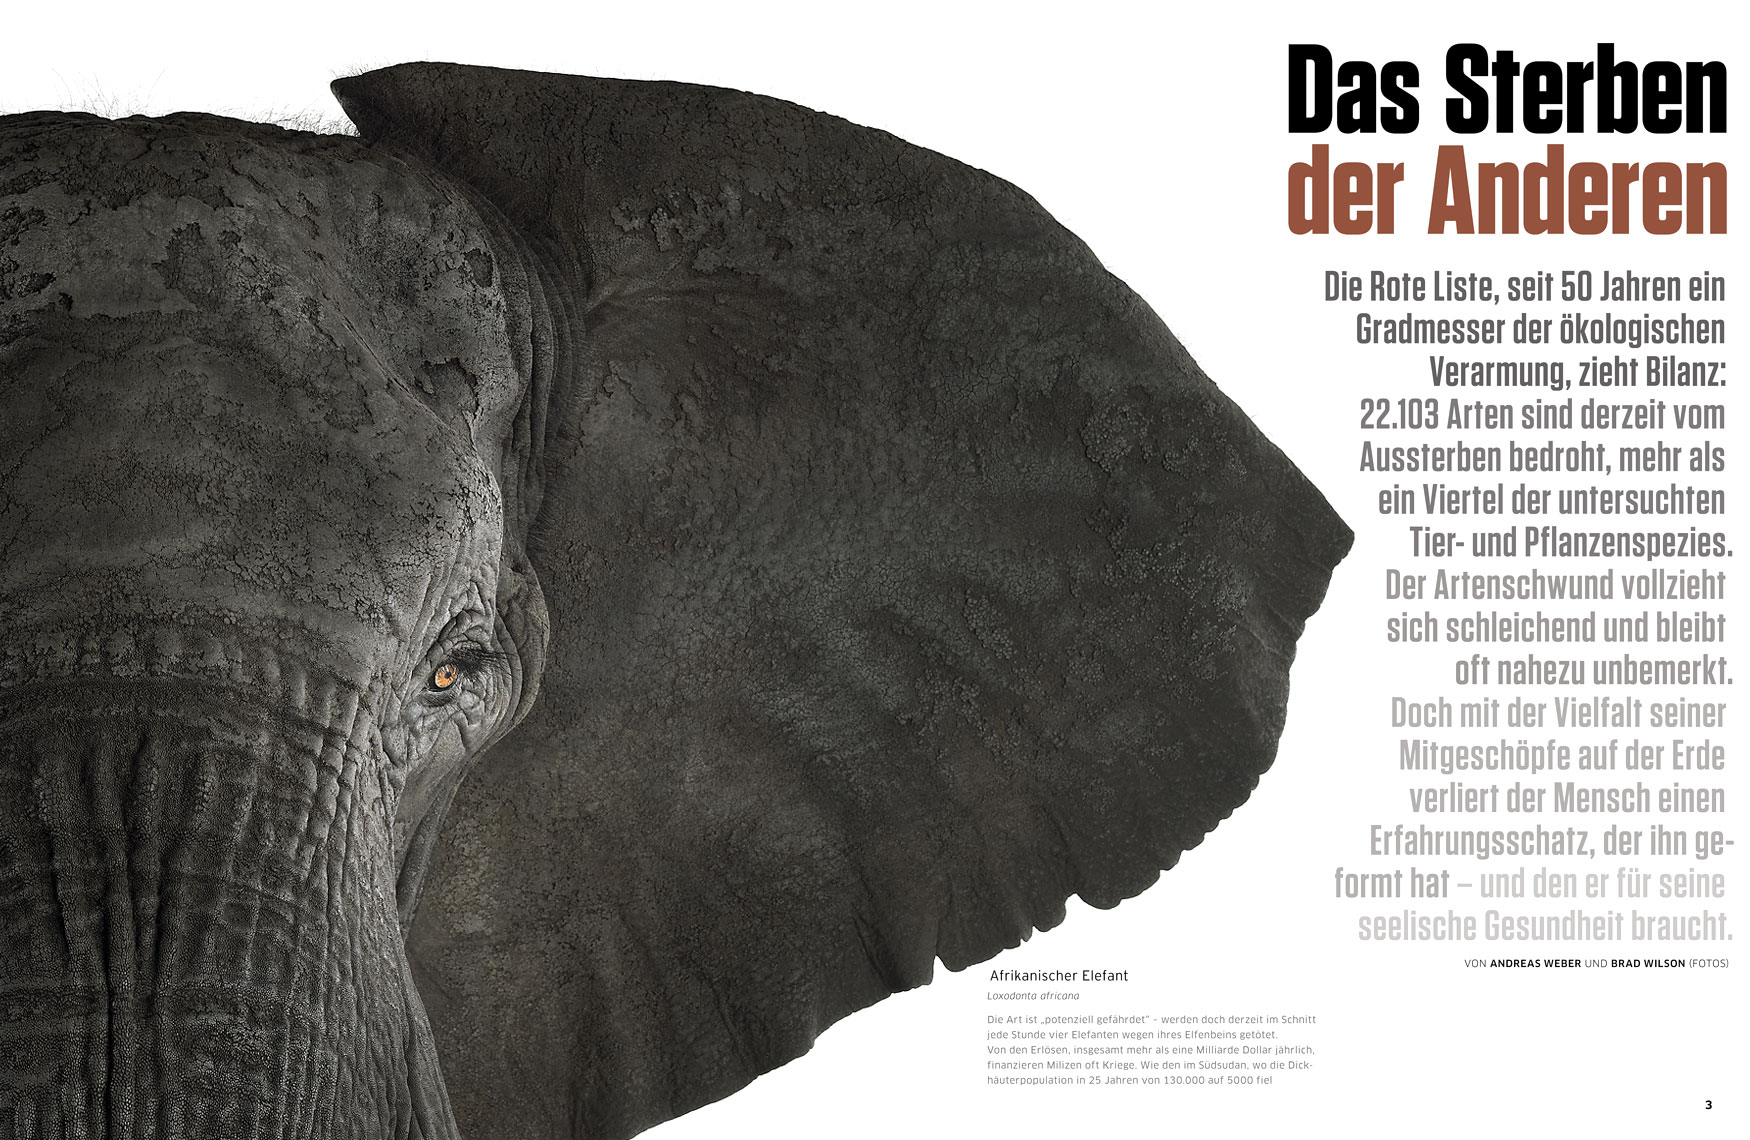 Greenpeace Magazine article about fine art wildlife photographer Brad Wilson